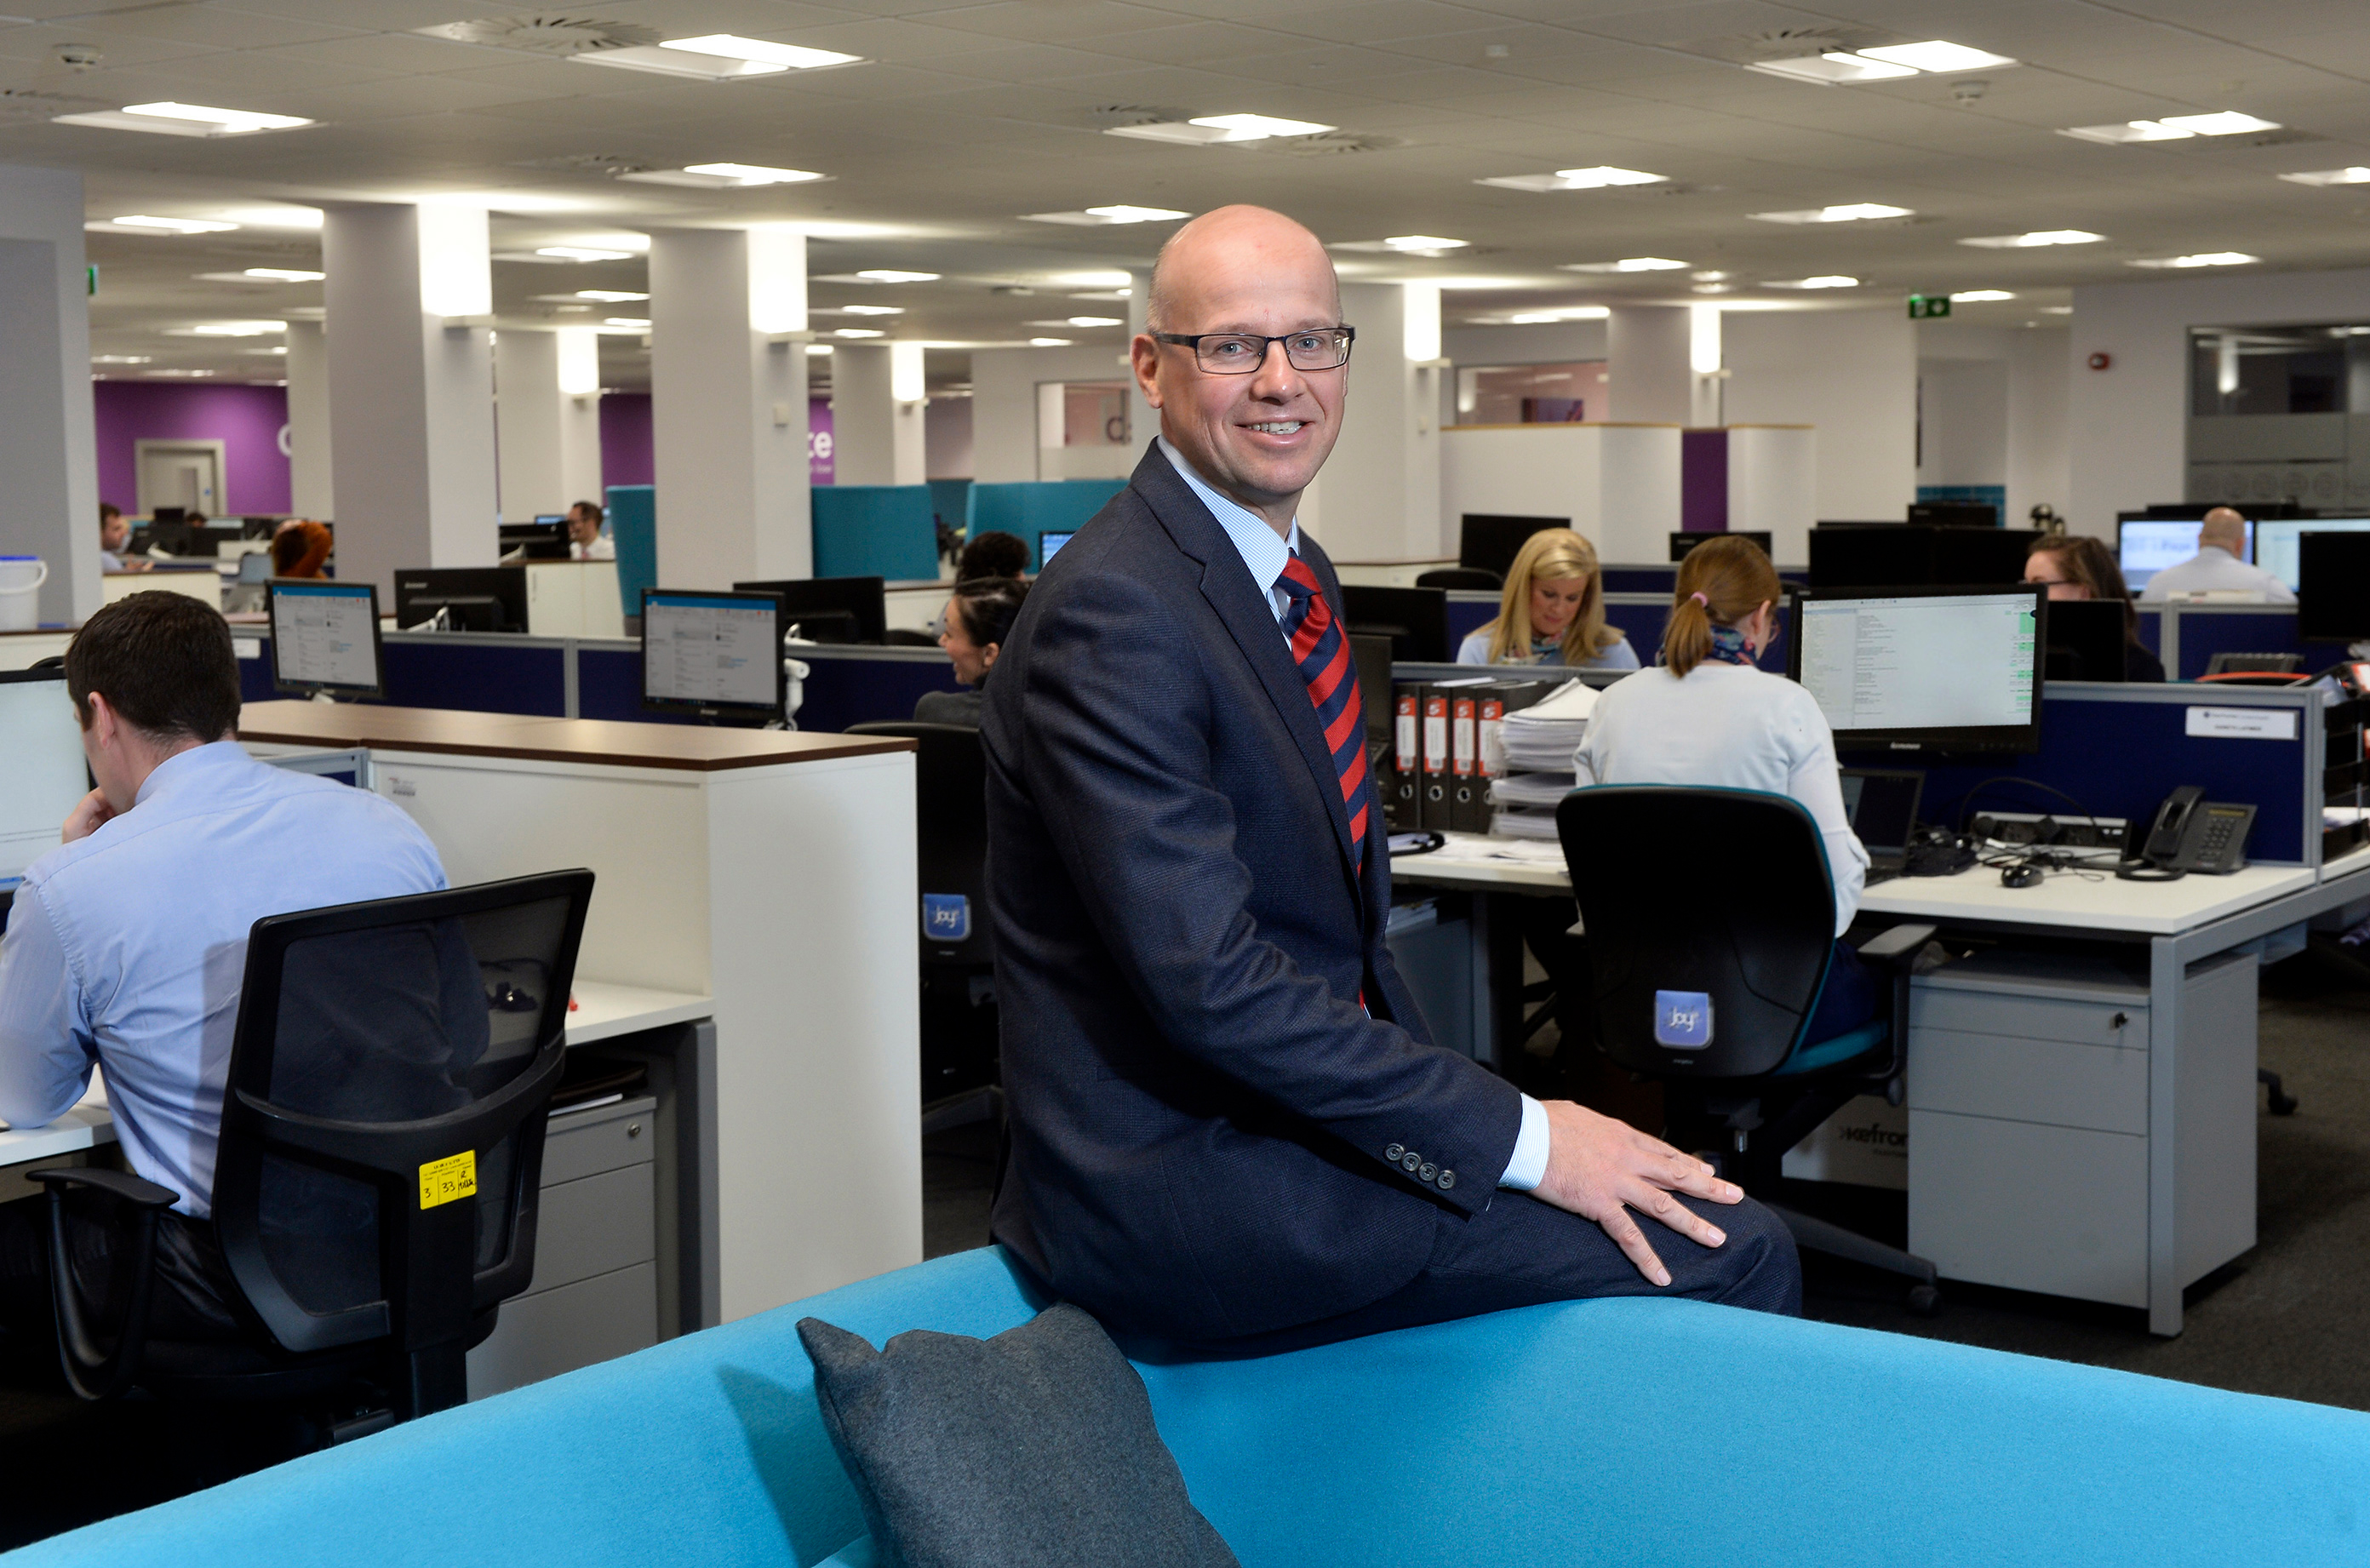 Public Relations: Richard Gillan, Managing Partner of Grant Thornton Northern Ireland, in the firm's new office on the third floor of the landmark building on Donegall Square West, which also serves as Danske Bank UK's headquarters. Grant Thornton has made a seven-figure investment in the project, with the state-of-the-art Grade A office facilities featuring a largely open plan office with call booths and collaboration zones throughout.